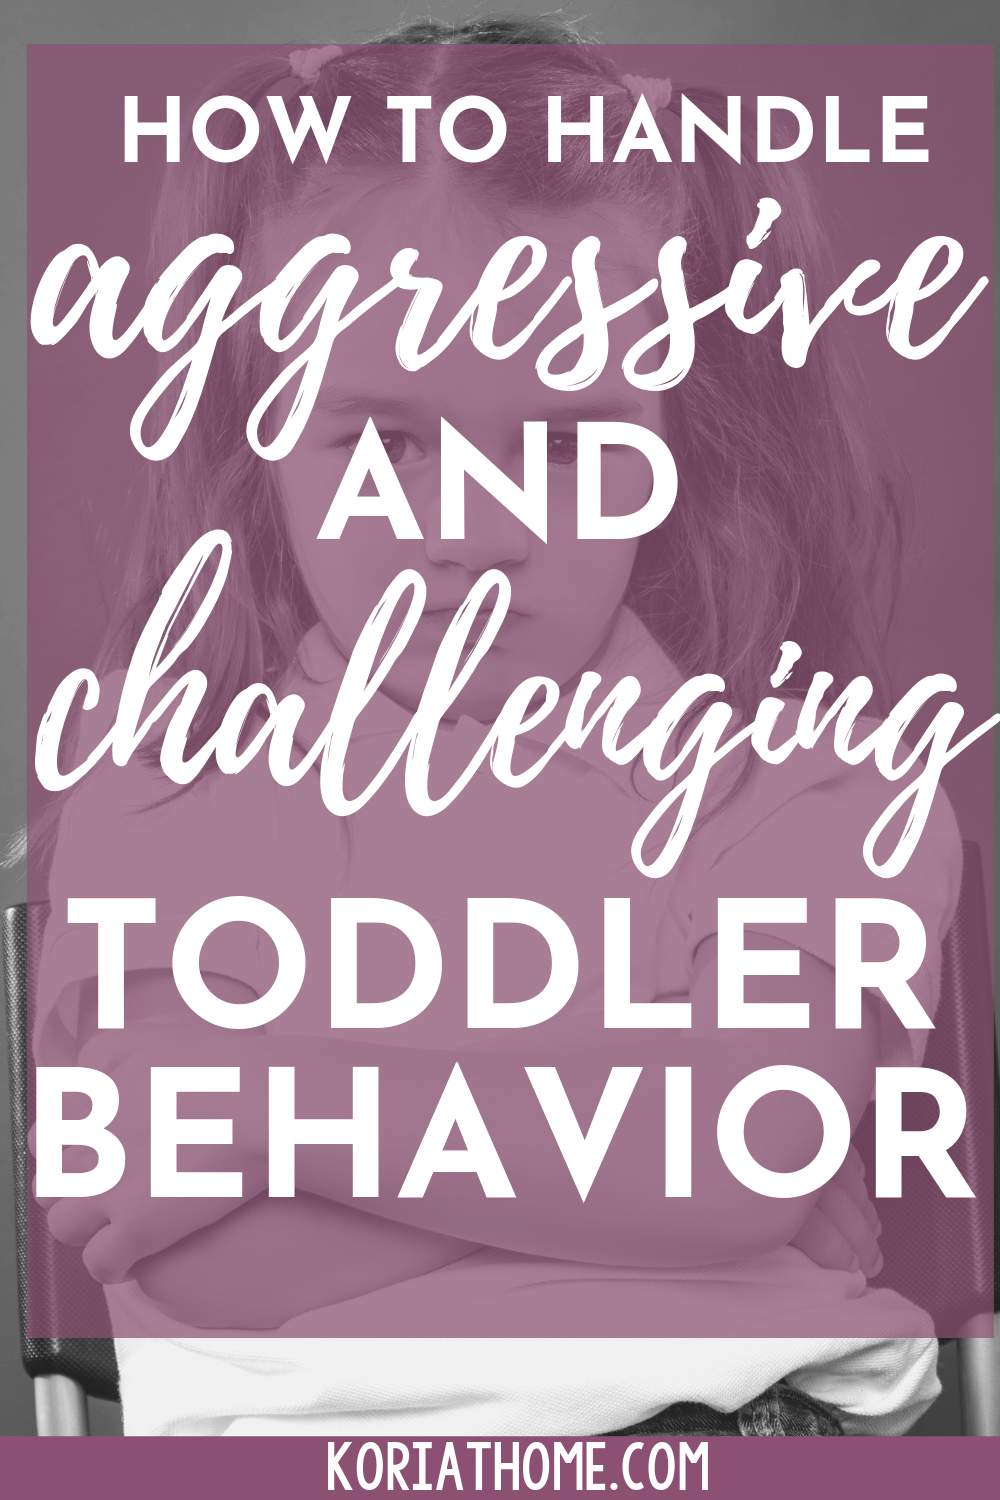 How to Stop Your Toddler's Bad Behavior Issues 1